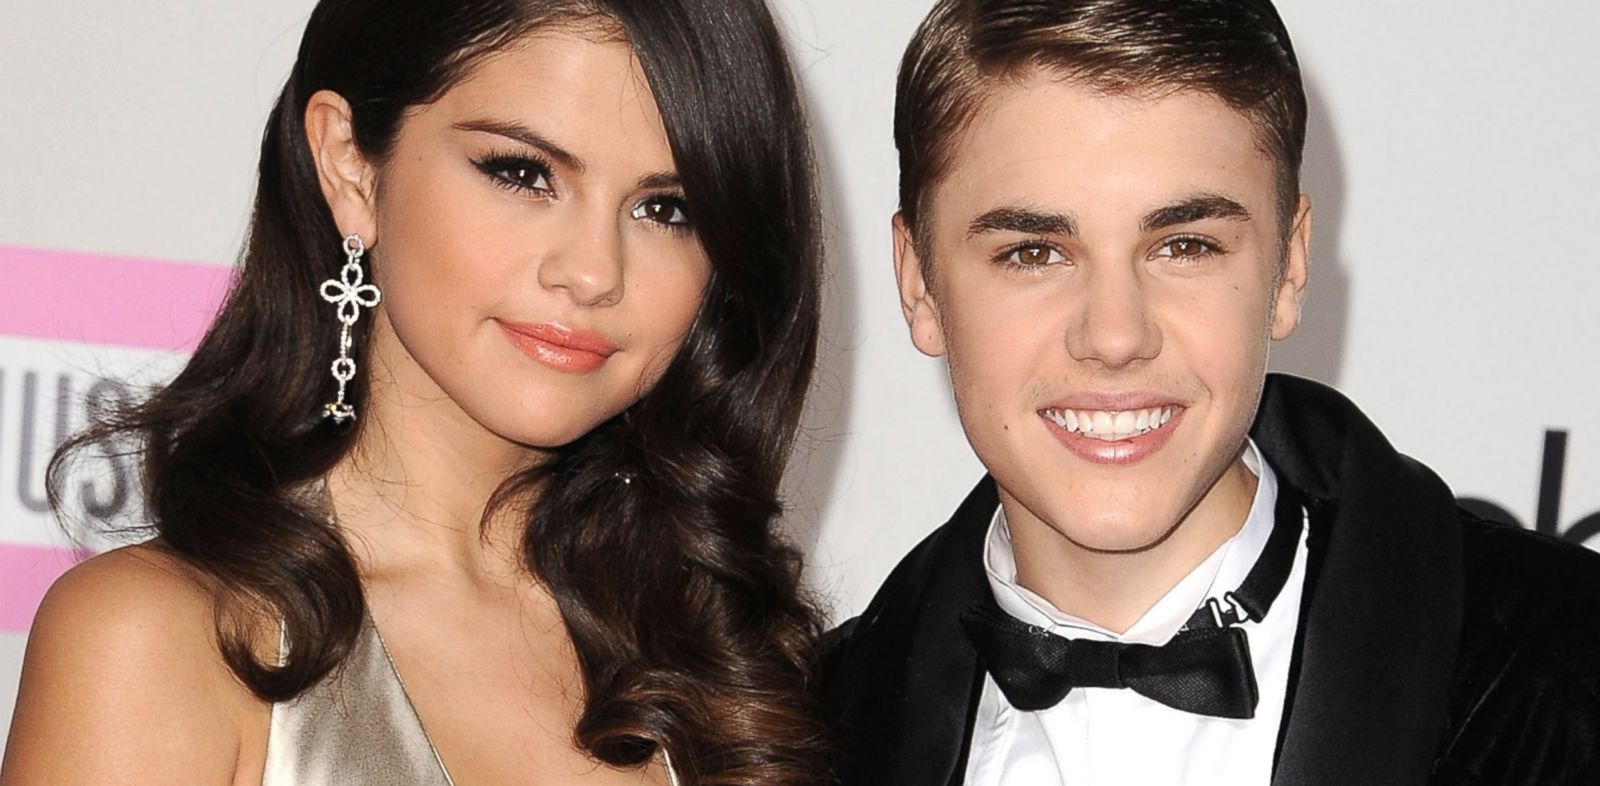 PHOTO: Selena Gomez and Justin Bieber arrives at the 2011 American Music Awards at Nokia Theatre L.A. Live, Nov. 20, 2011, in Los Angeles.